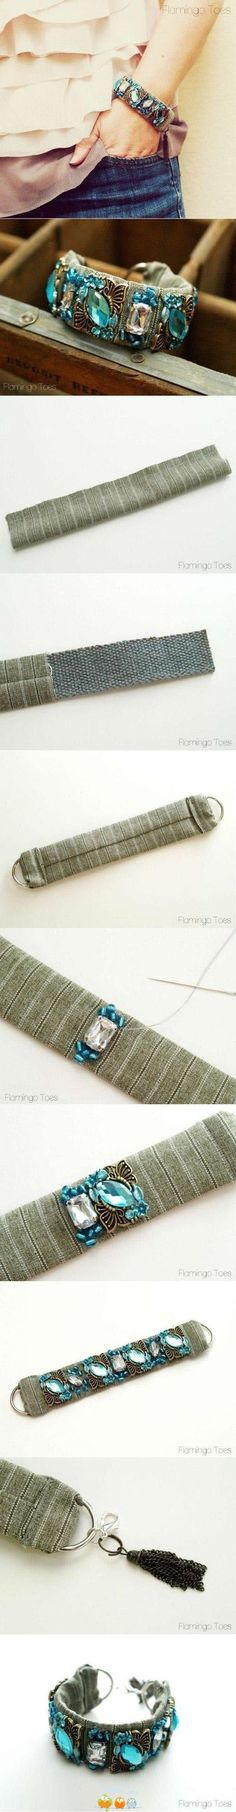 #diy #sewing #jewelry